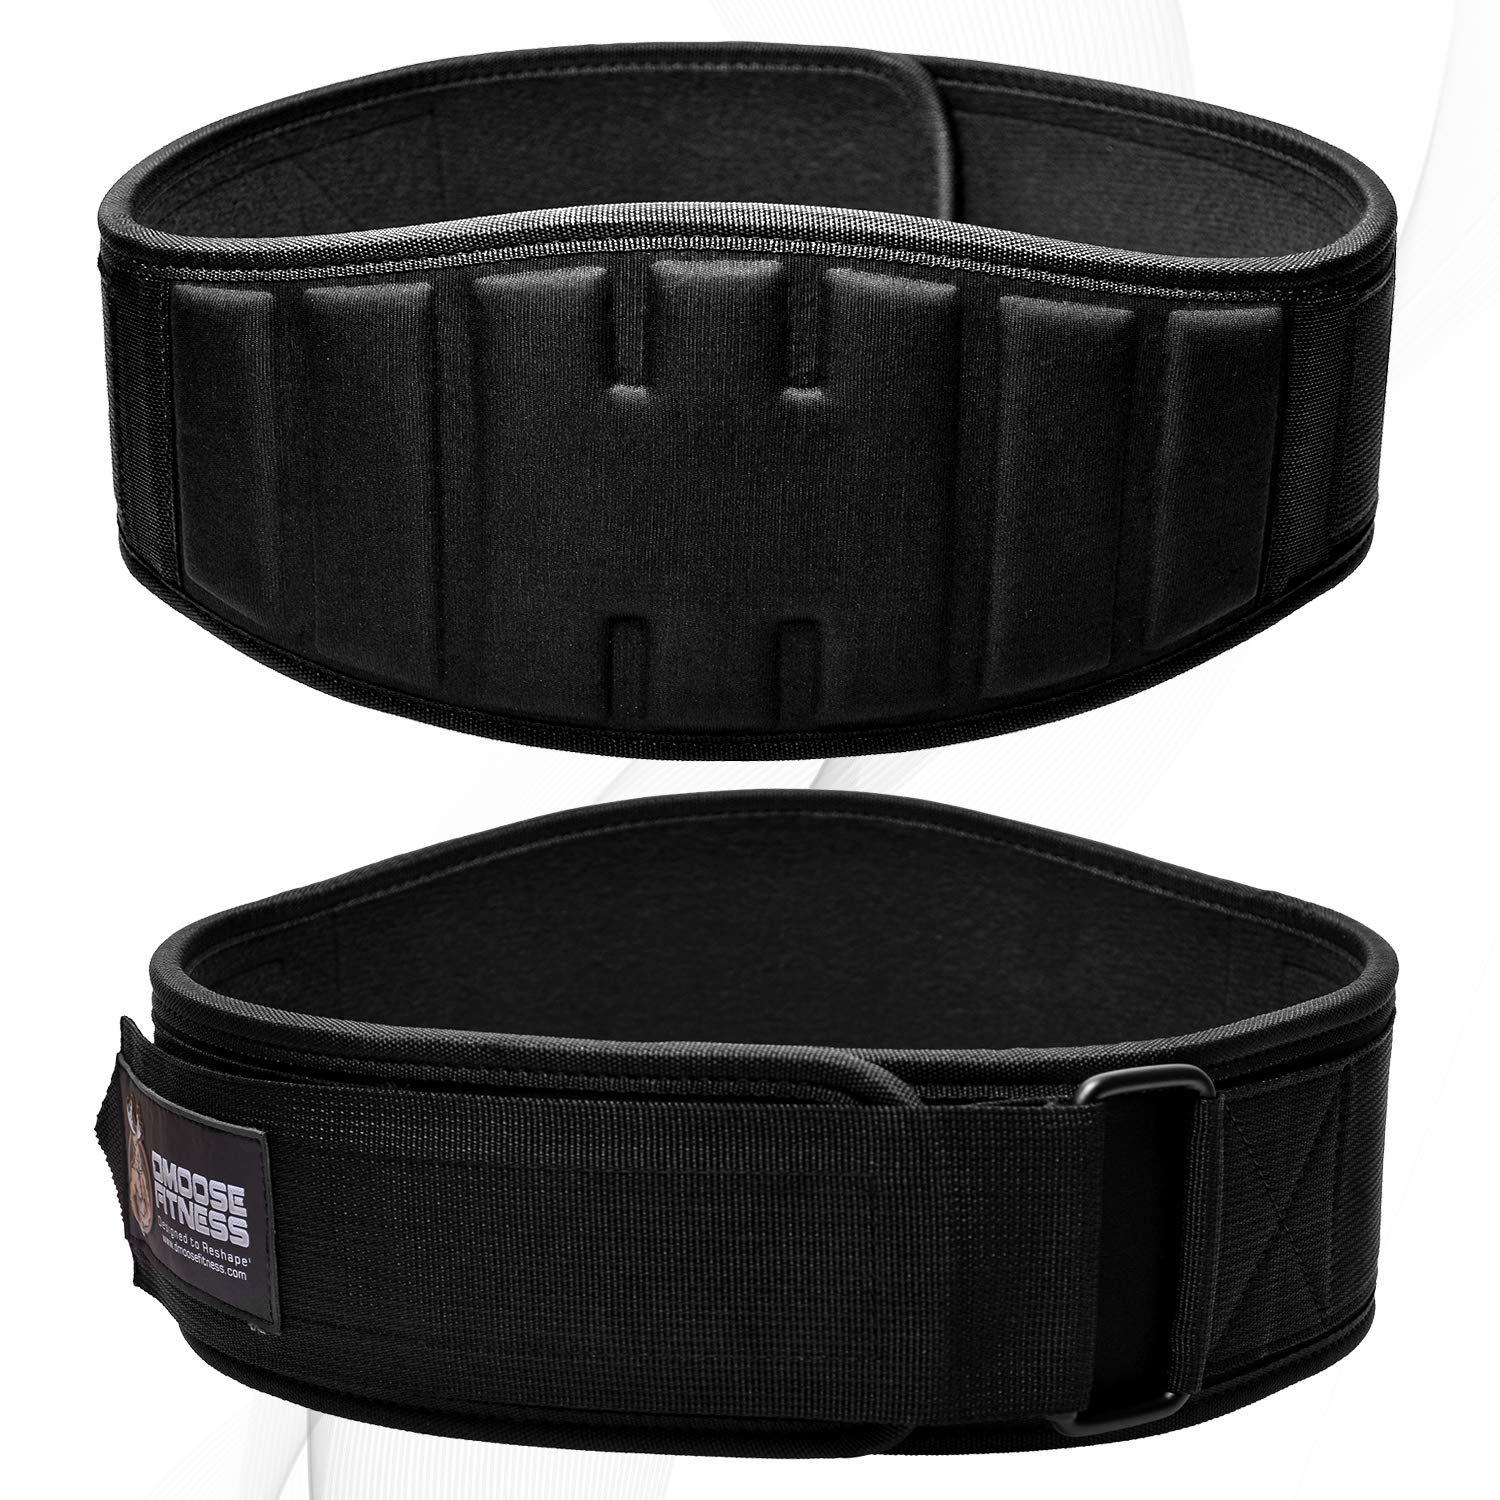 DMoose Fitness Weightlifting Belt for Men and Women, Workout and Exercise Support for Lower Back, Deadlifts and Squats, Posture Corrector for Powerlifting, Bodybuilding